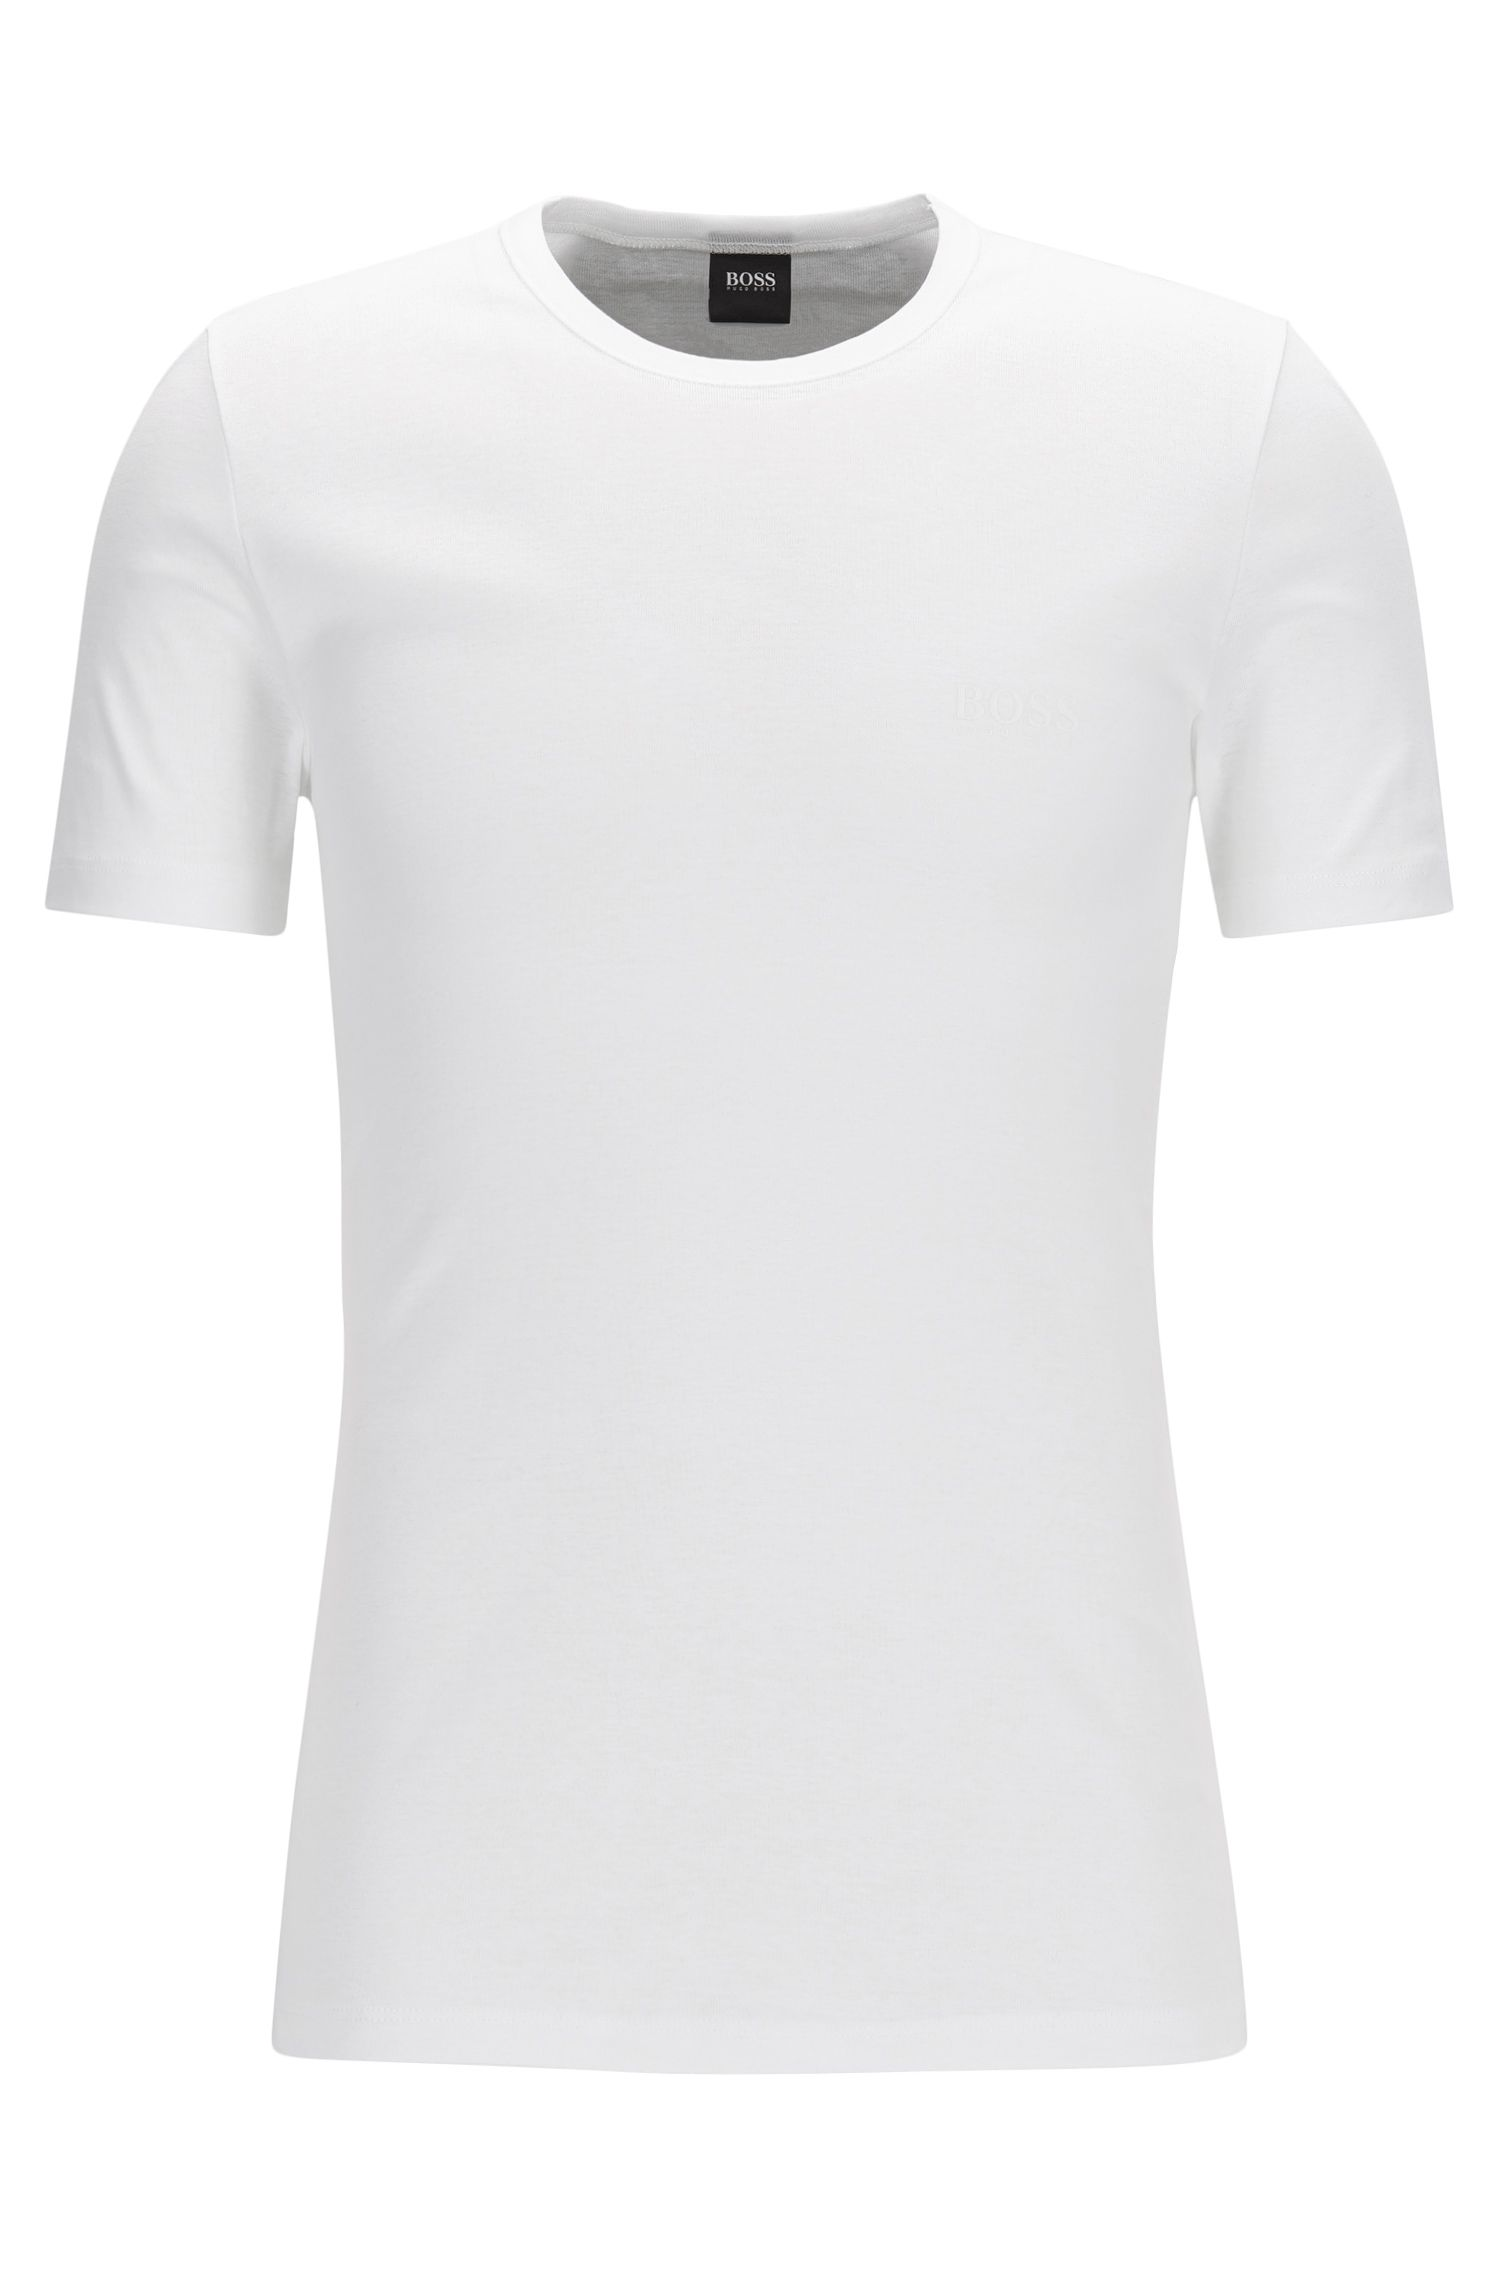 Regular-Fit T-Shirt aus gerippter Baumwolle